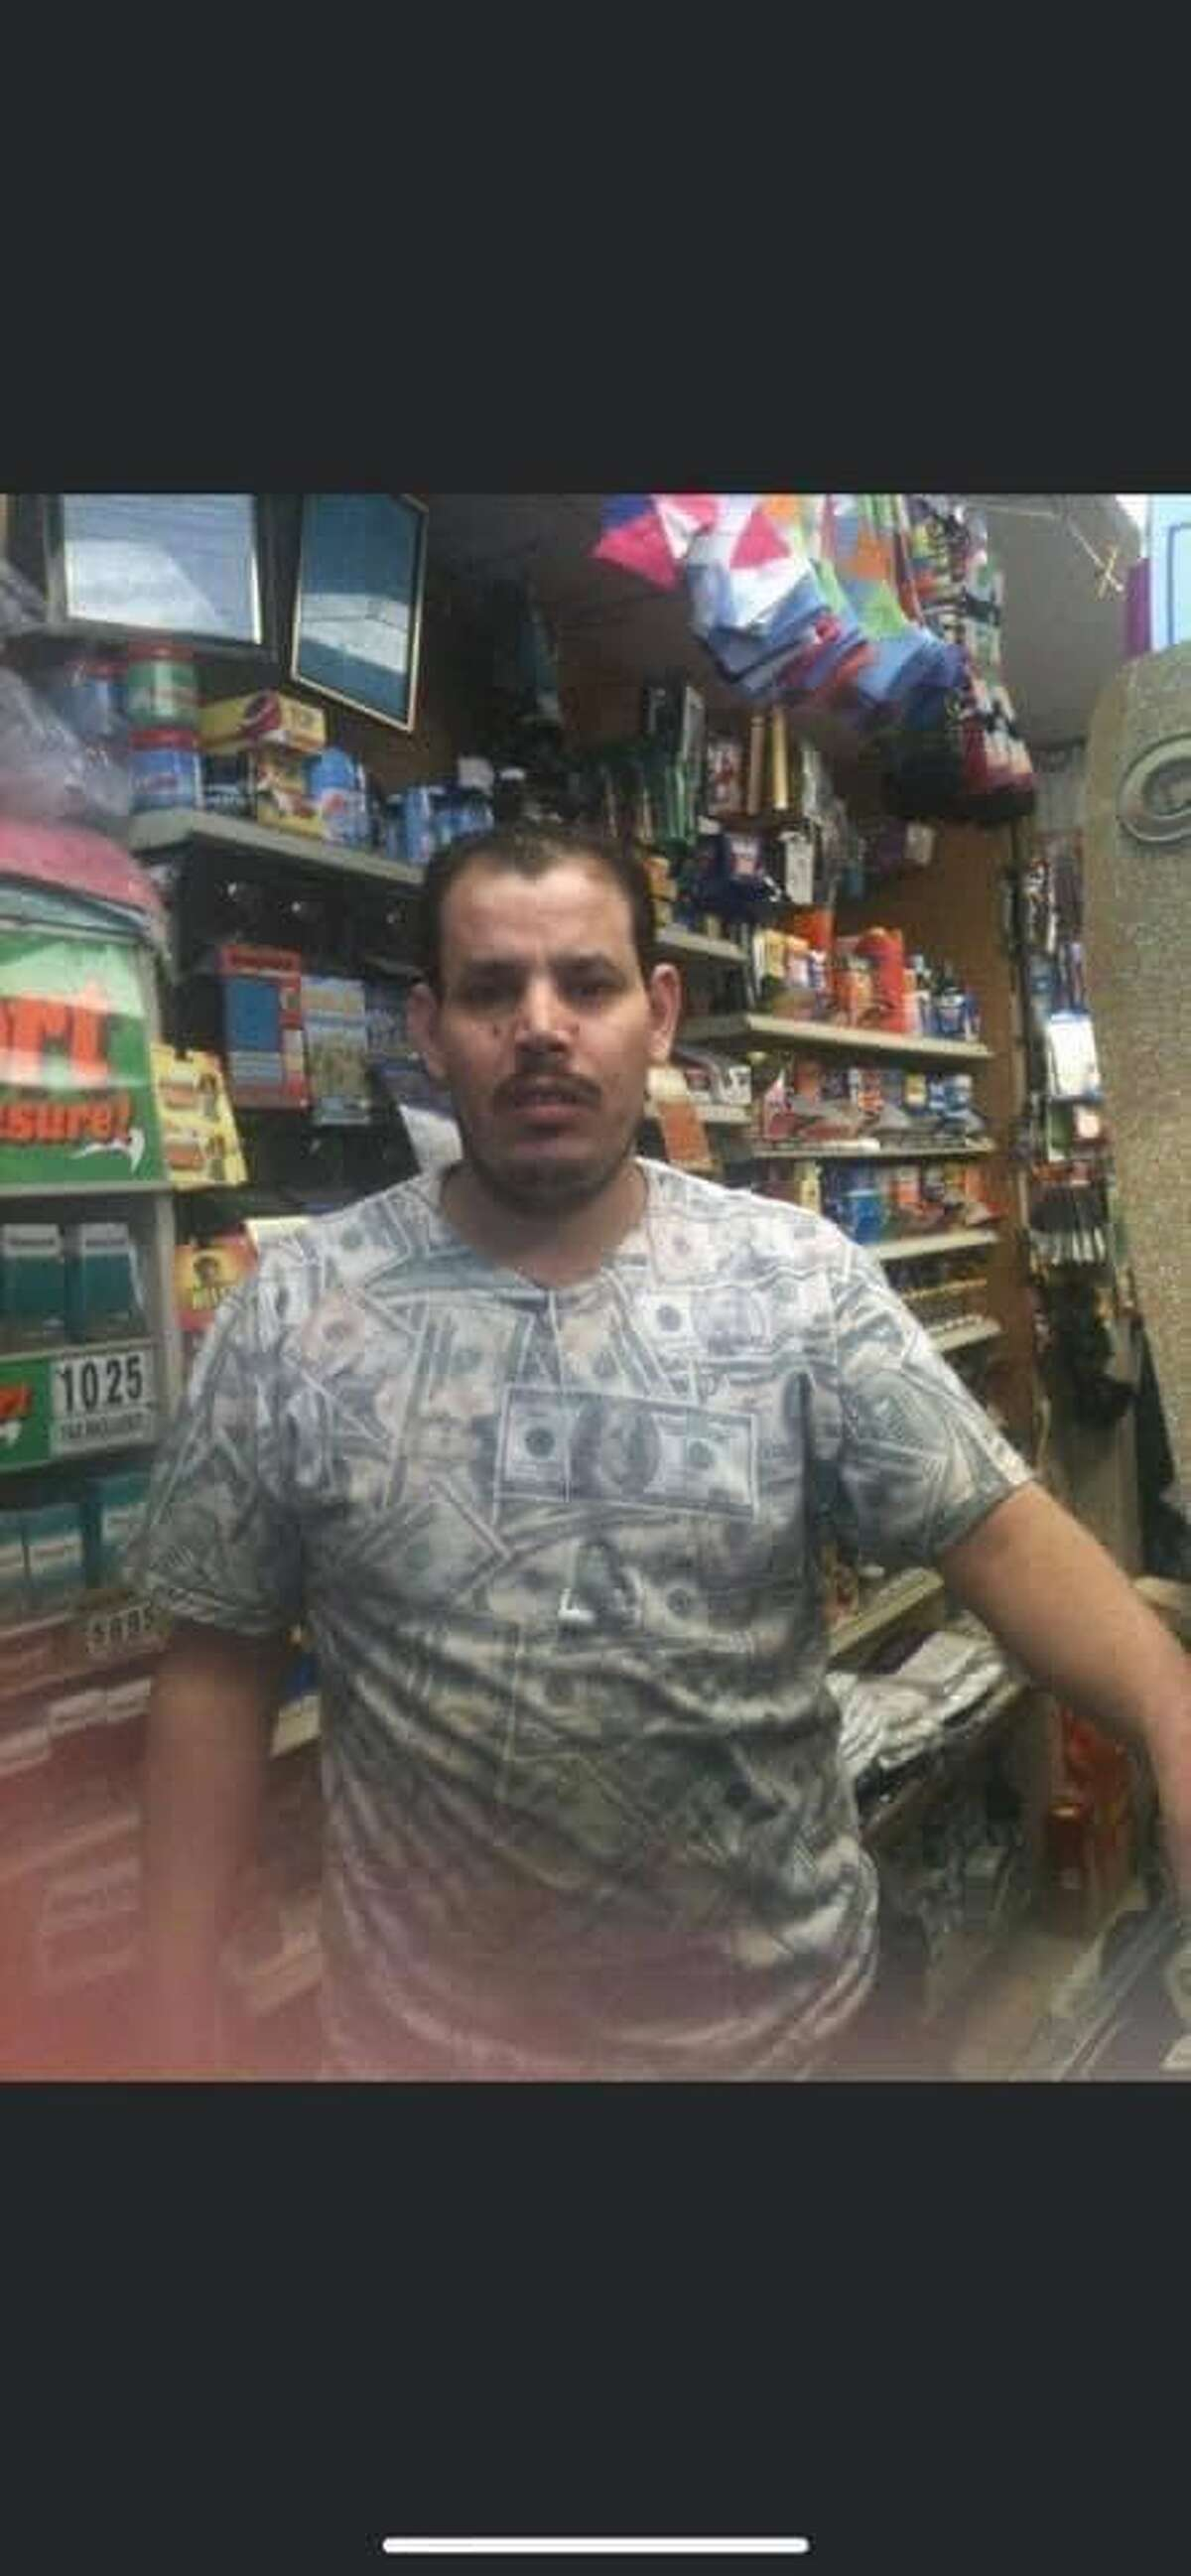 Sharf Addalim, 35, was shot and killed near First and Quail streets in Albany on Friday afternoon, May 21, 2021.